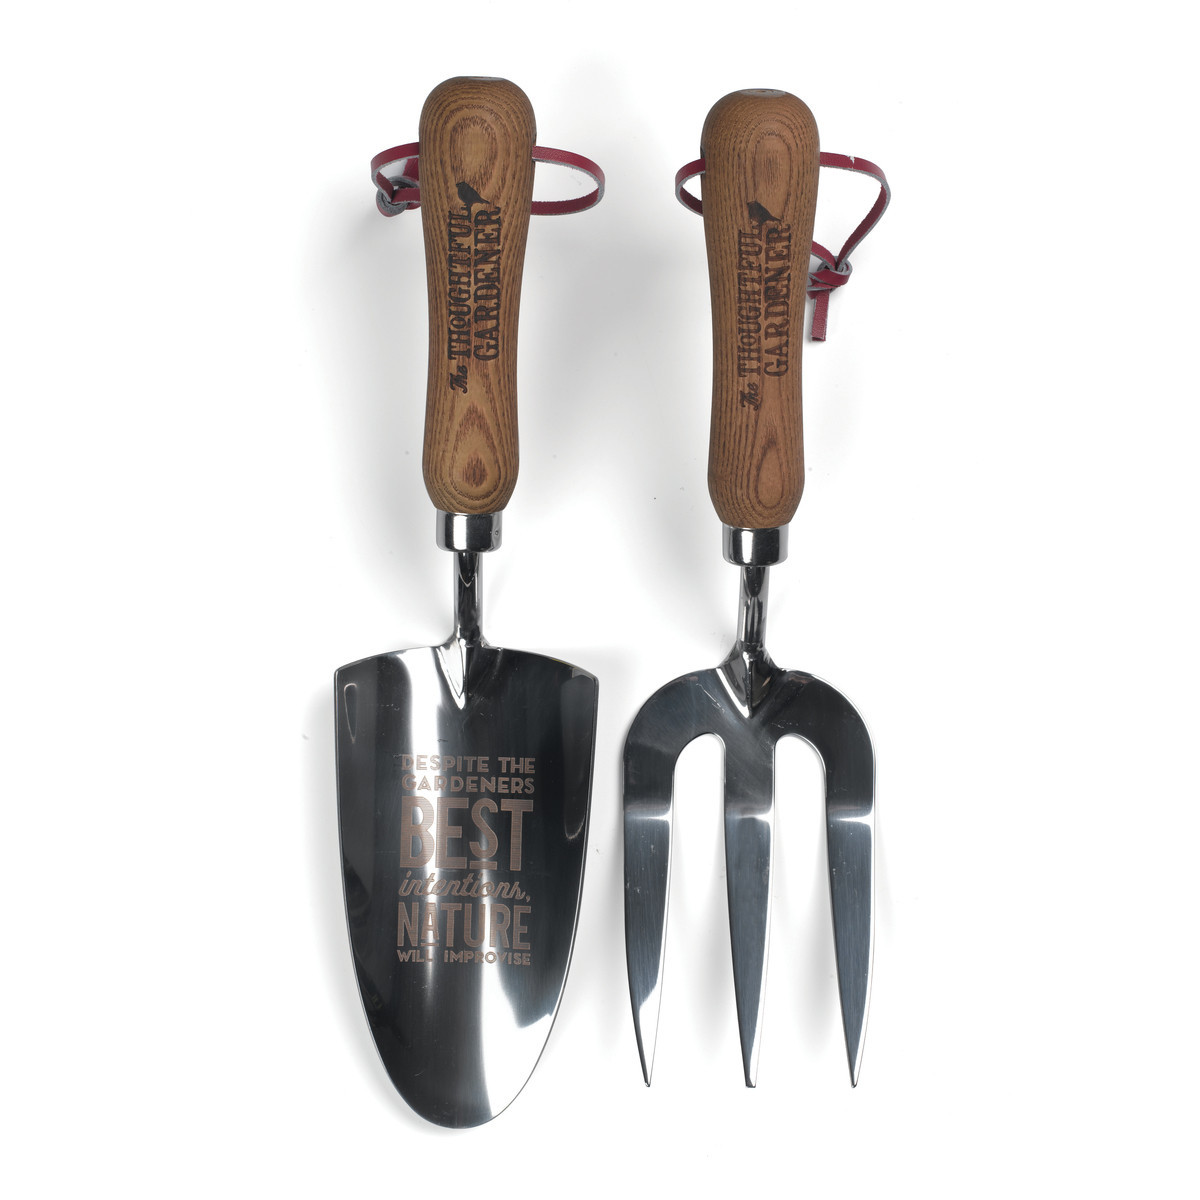 Thoughtful Gardener: Hand Trowel & Fork - Wood image